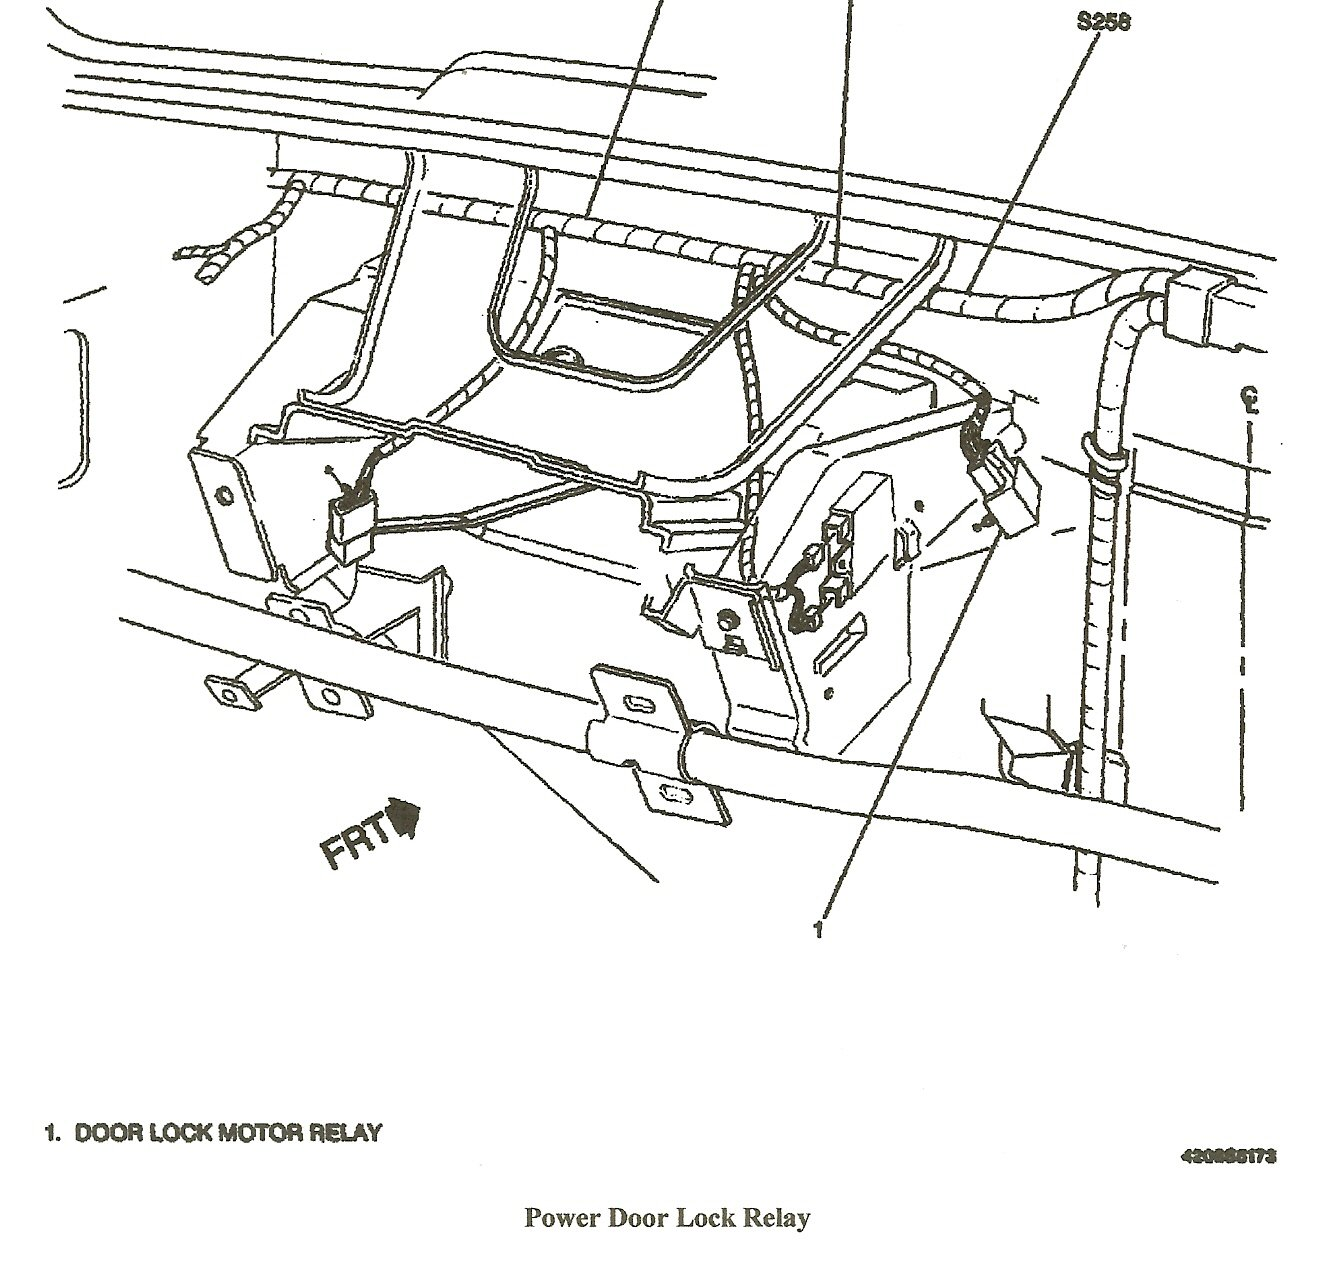 1997 Gmc Sonoma Engine Diagram moreover Showthread together with 31x8z 79 Ford Wiring Diagram Steering Column A 1972 Bronco Flashers furthermore 2002 Chevy Trailblazer Pcm Location besides 95 Gmc Sonoma Wiring Diagram. on relay wiring diagram 1996 gmc jimmy